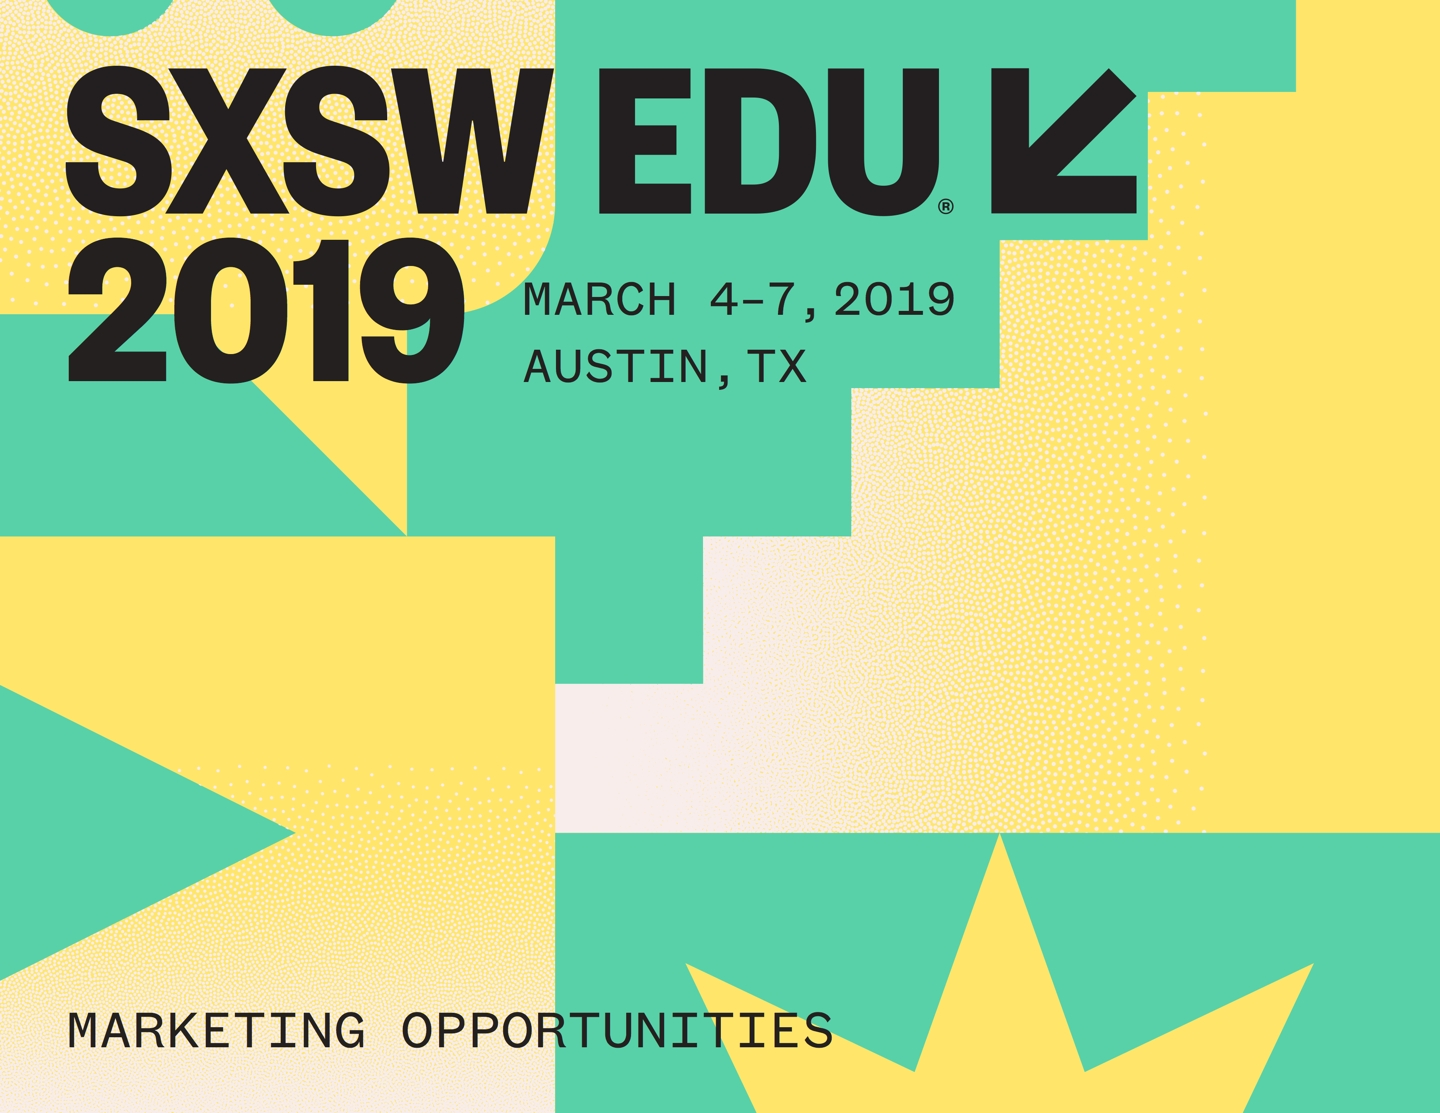 marketing opportunities sxsw edu 2019 marketing sxsw edu